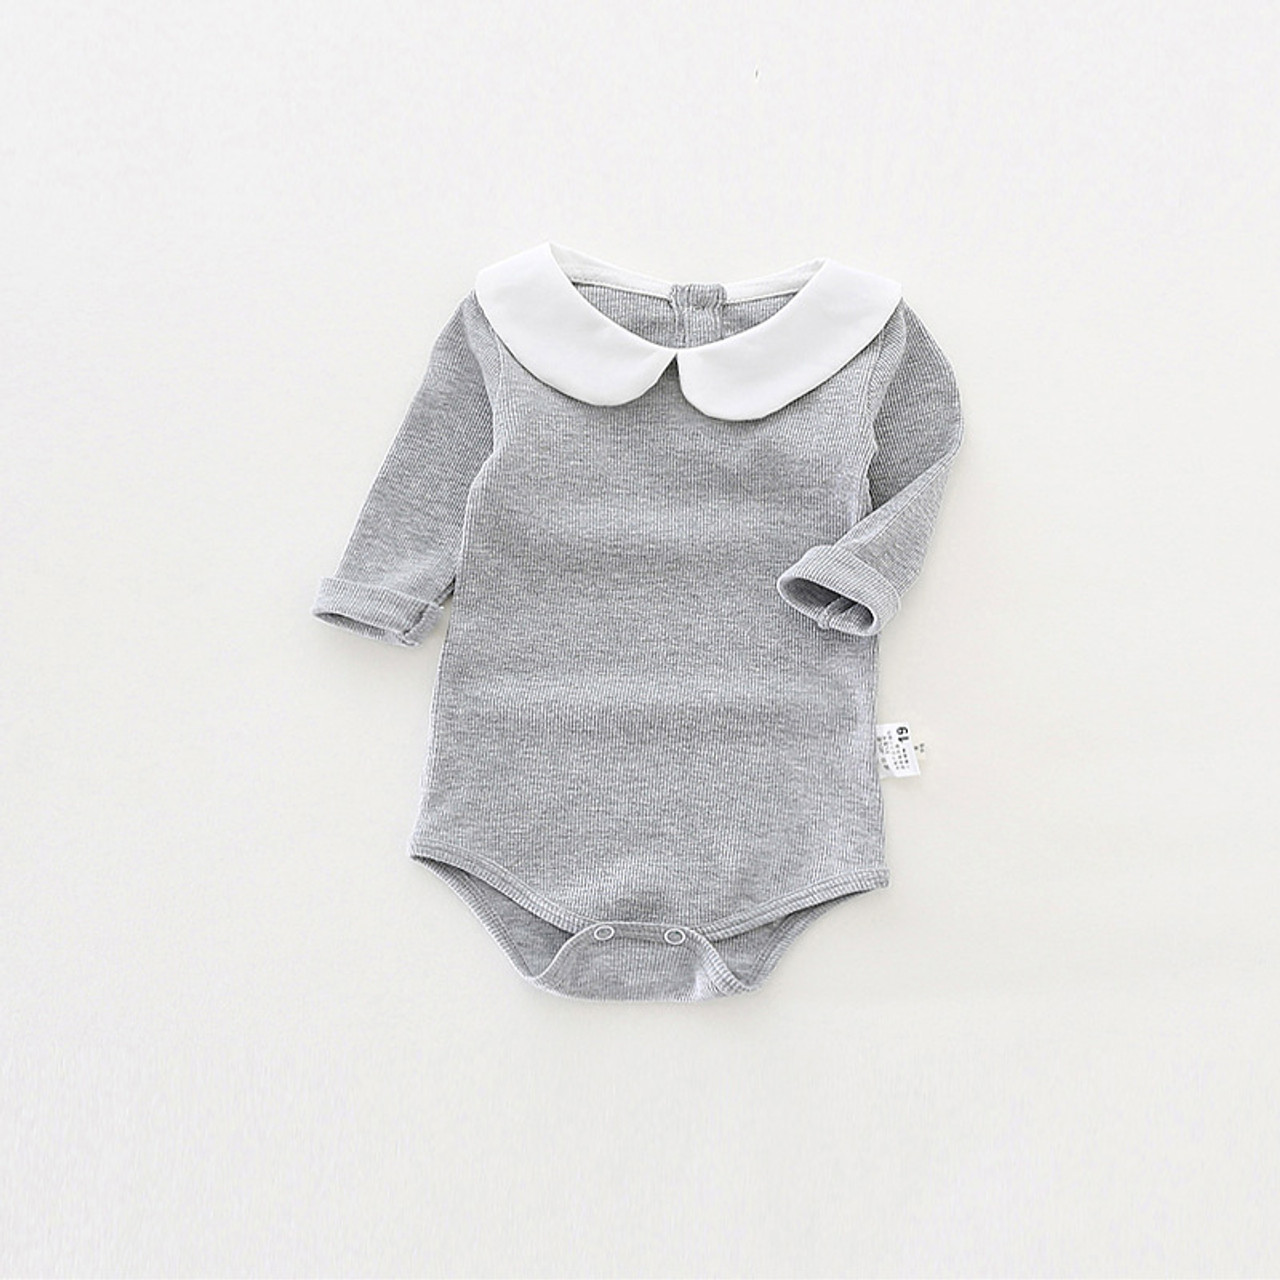 04a00da0c ... Cute Newborn Baby Girl Clothing Long Sleeve Cotton Baby Rompers Peter  Pan Collar Baby Girls Jumpsuit ...